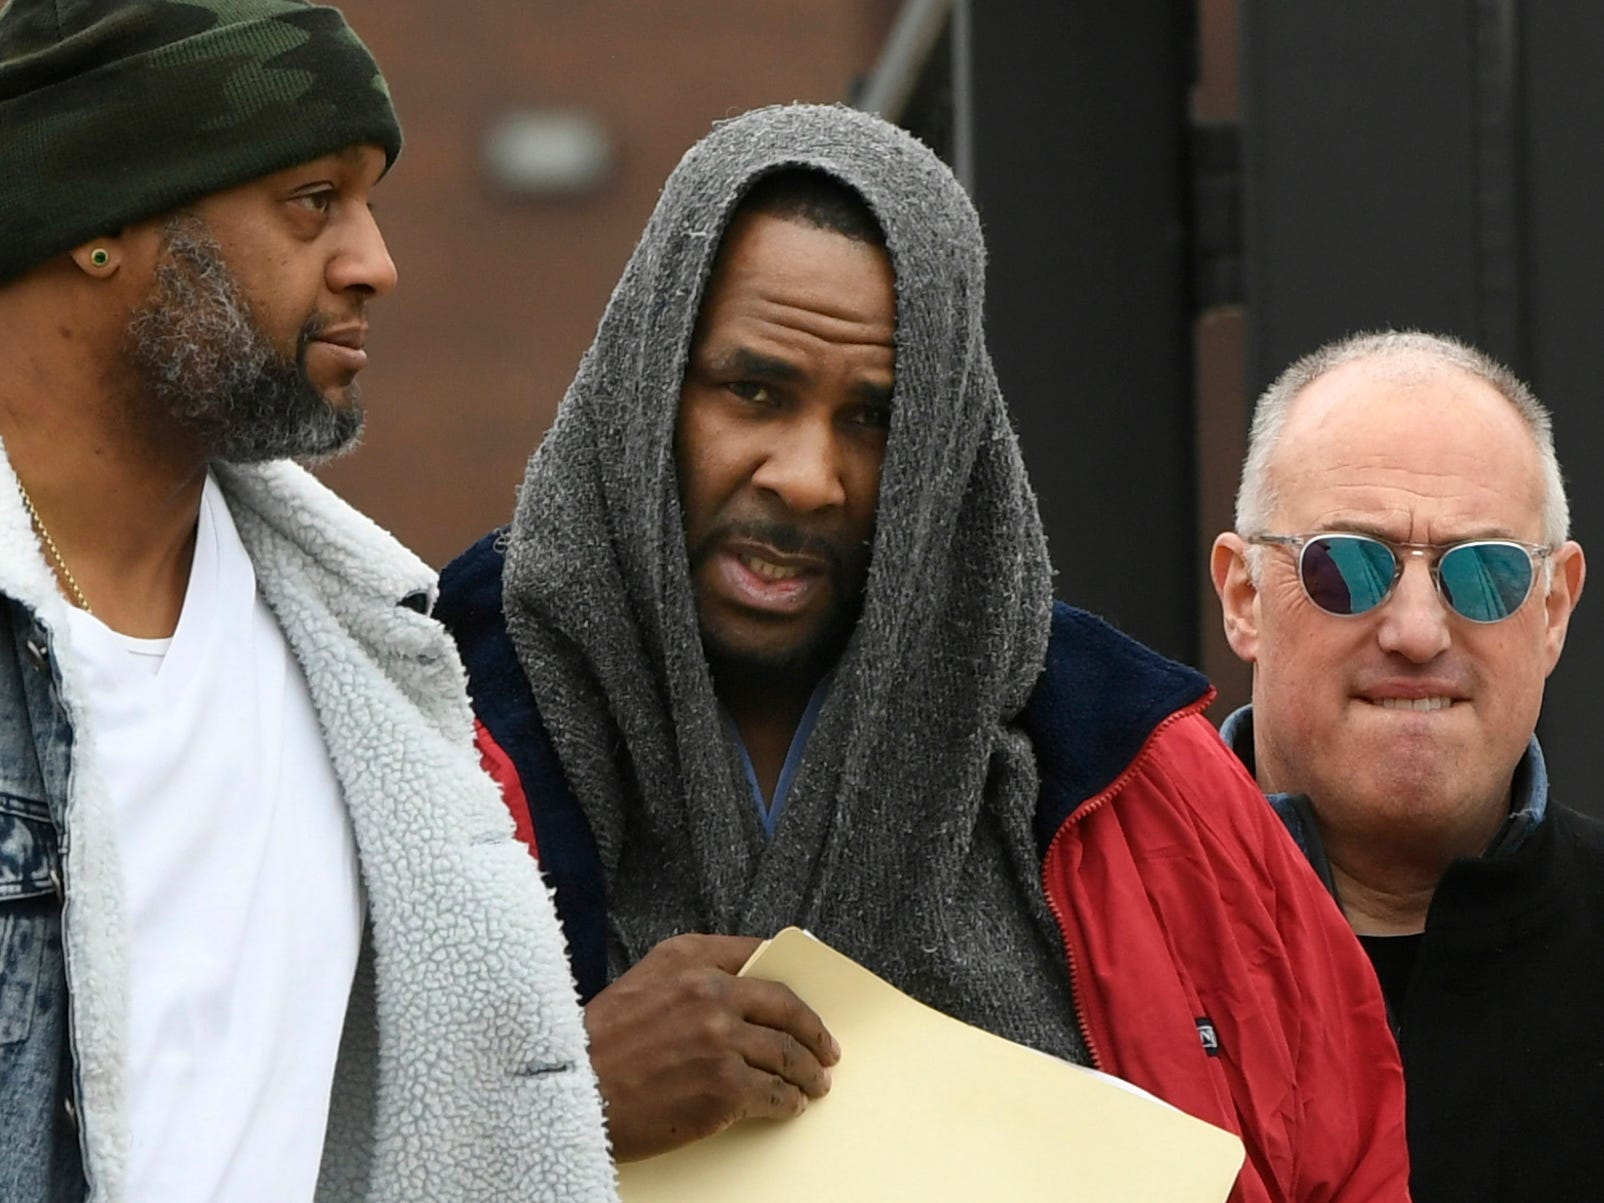 Singer R. Kelly center, walks with his attorney Steve Greenberg right, and an unidentified man left, who gave him a ride after being released from Cook County Jail, March 9, 2019, in Chicago.